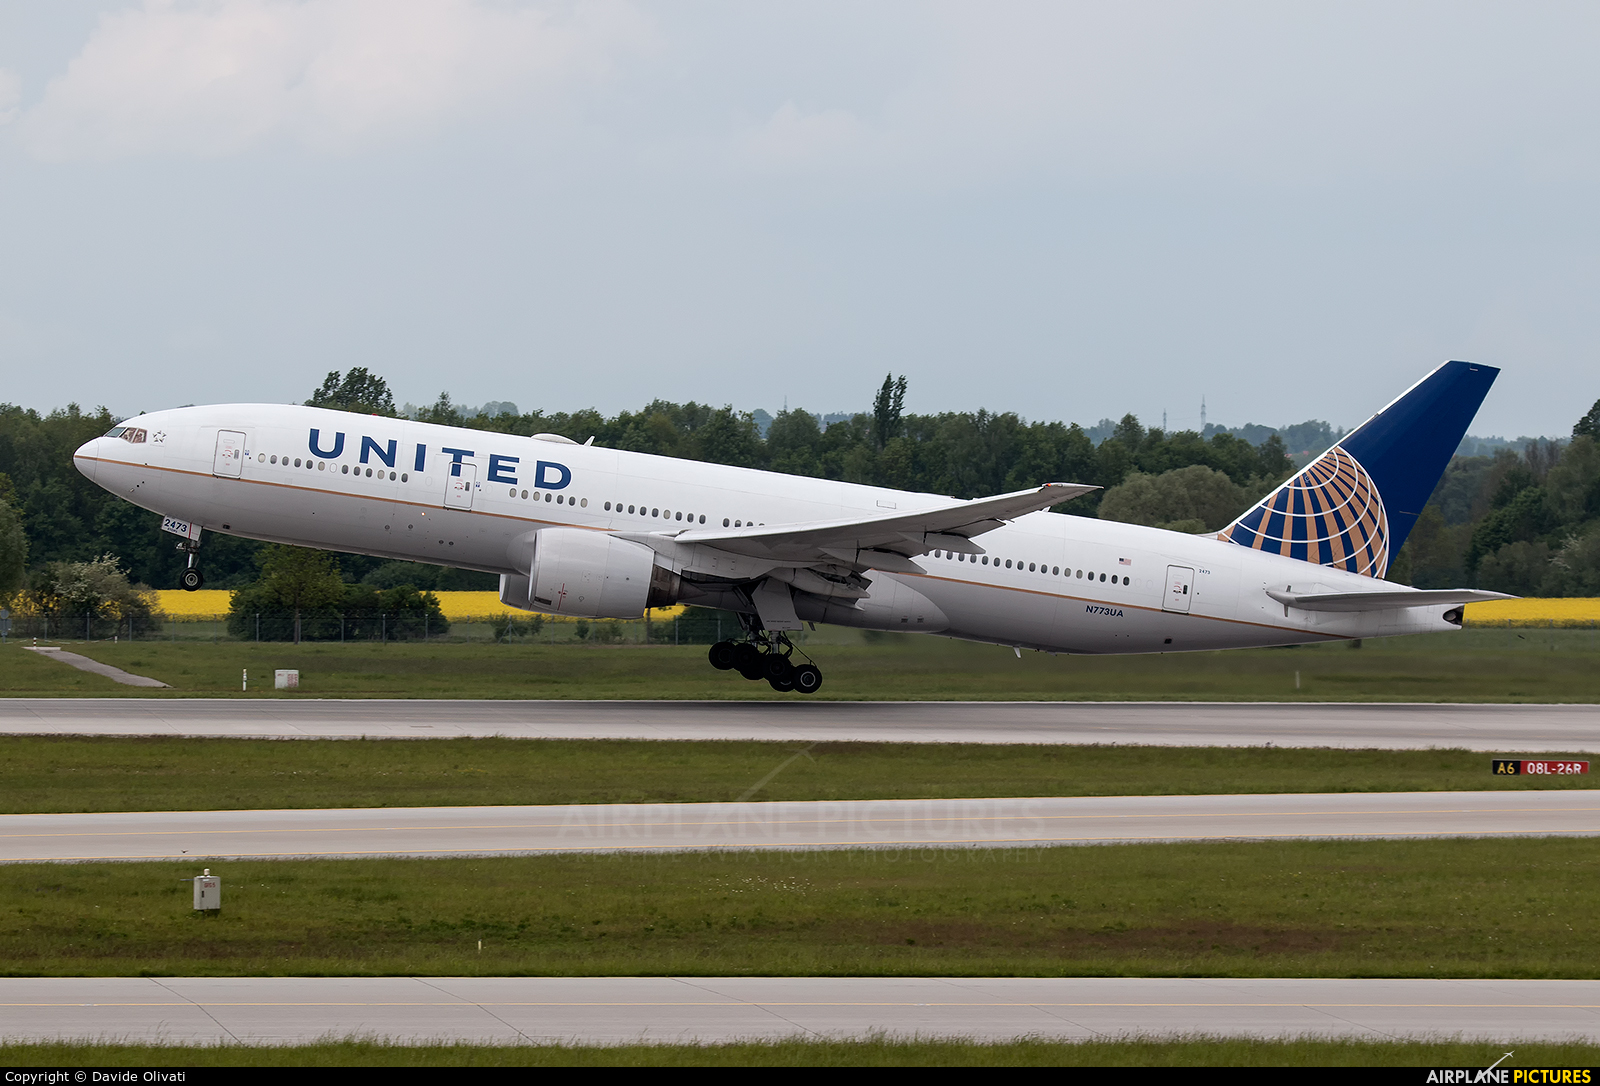 United Airlines N773UA aircraft at Munich